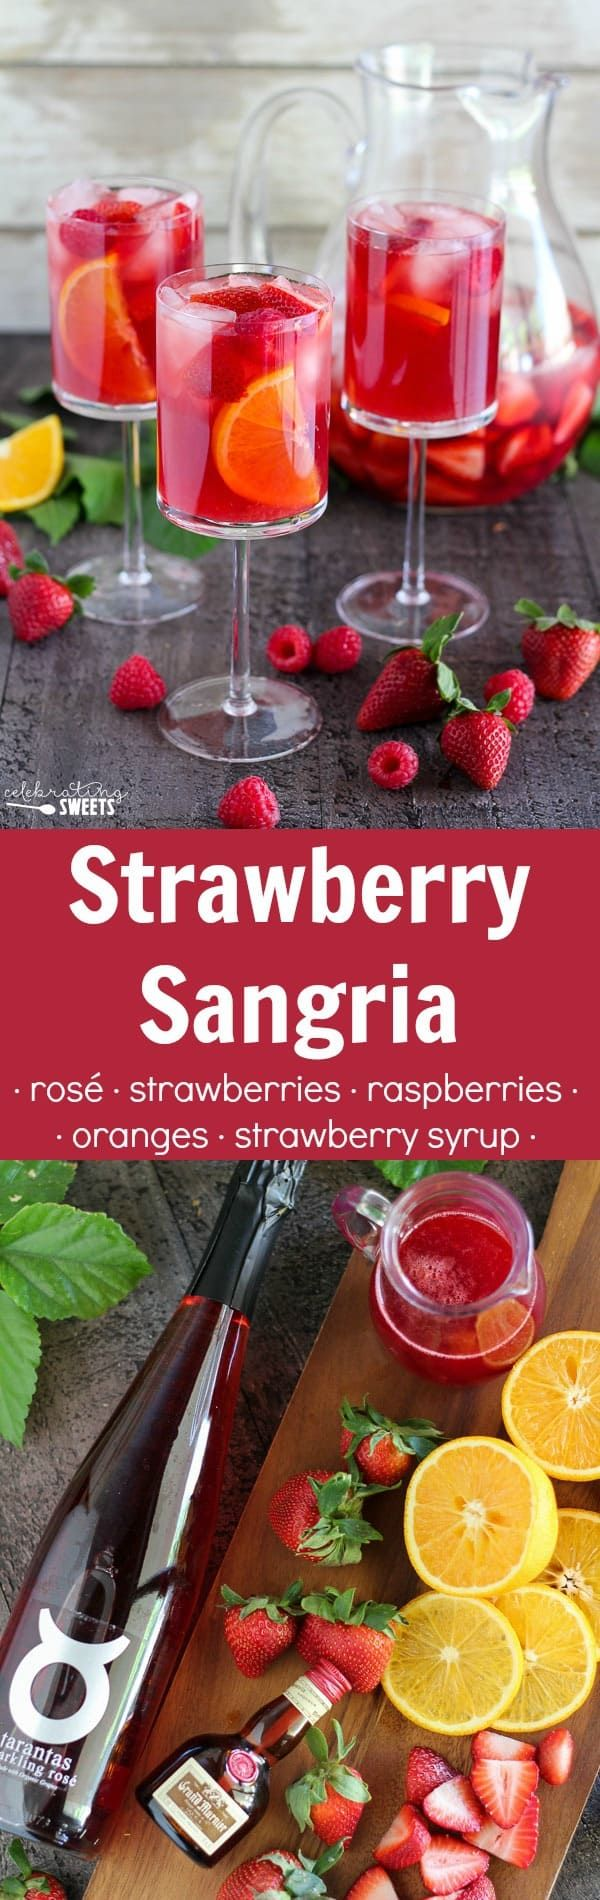 Strawberry Sangria White Wine Or Rose Flavored With Fresh Strawberries Raspberries Oranges And Homemade Strawberry Strawberry Sangria Sangria Fun Drinks